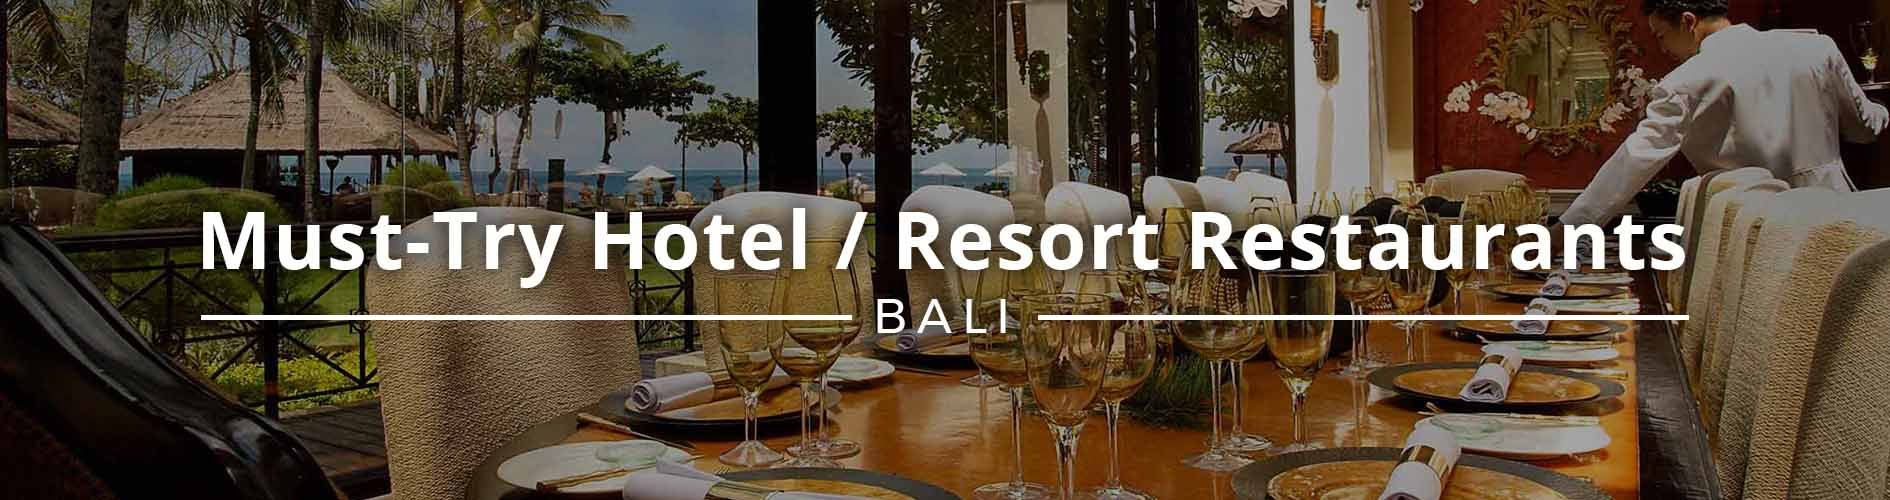 Must Try Restaurants In Hotels Or Resorts Bali Voucher Hotel Intercontinental Resort Jimbaran Is For Sure Food Lovers Paradise Heres A List Of The And Which Are When